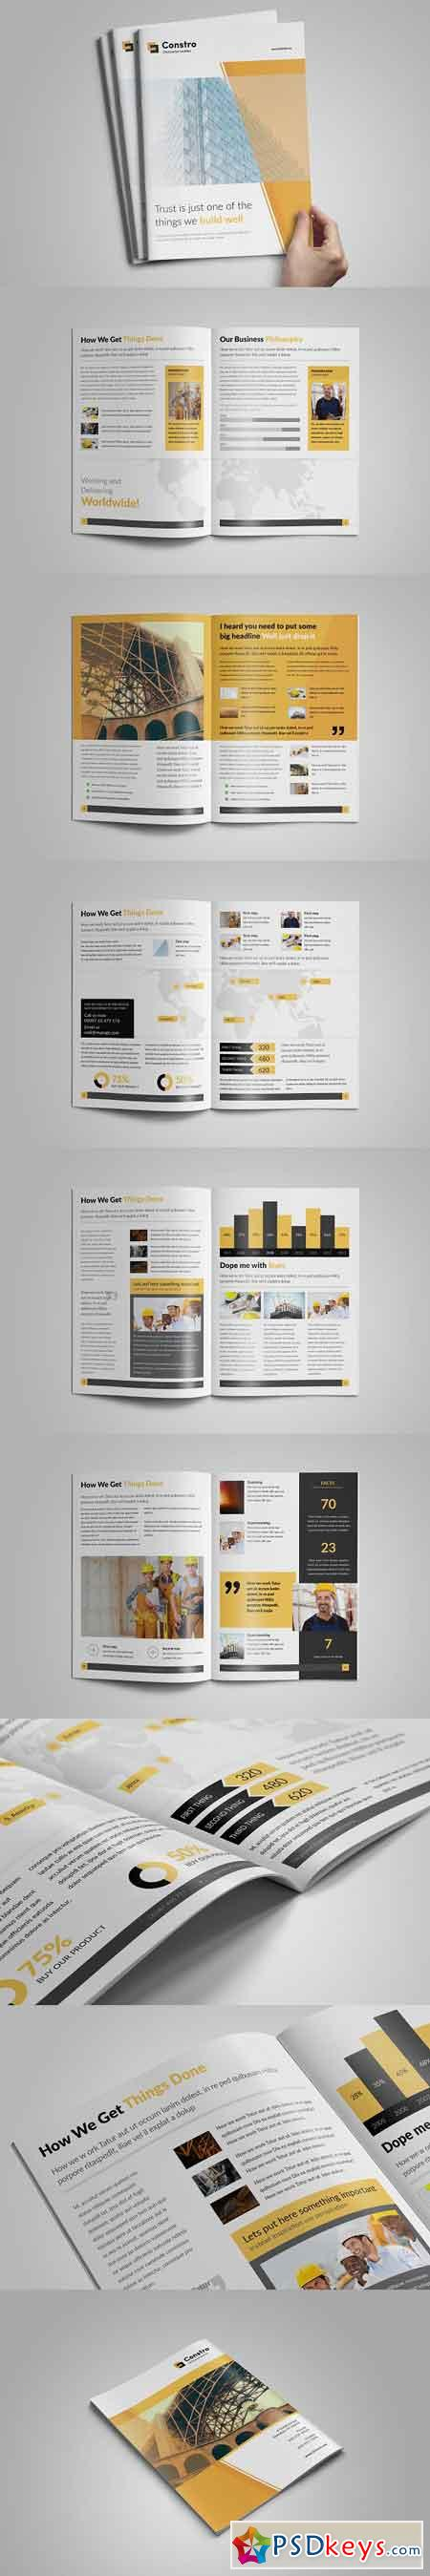 Construction A4 Brochure - InDesign 2813779